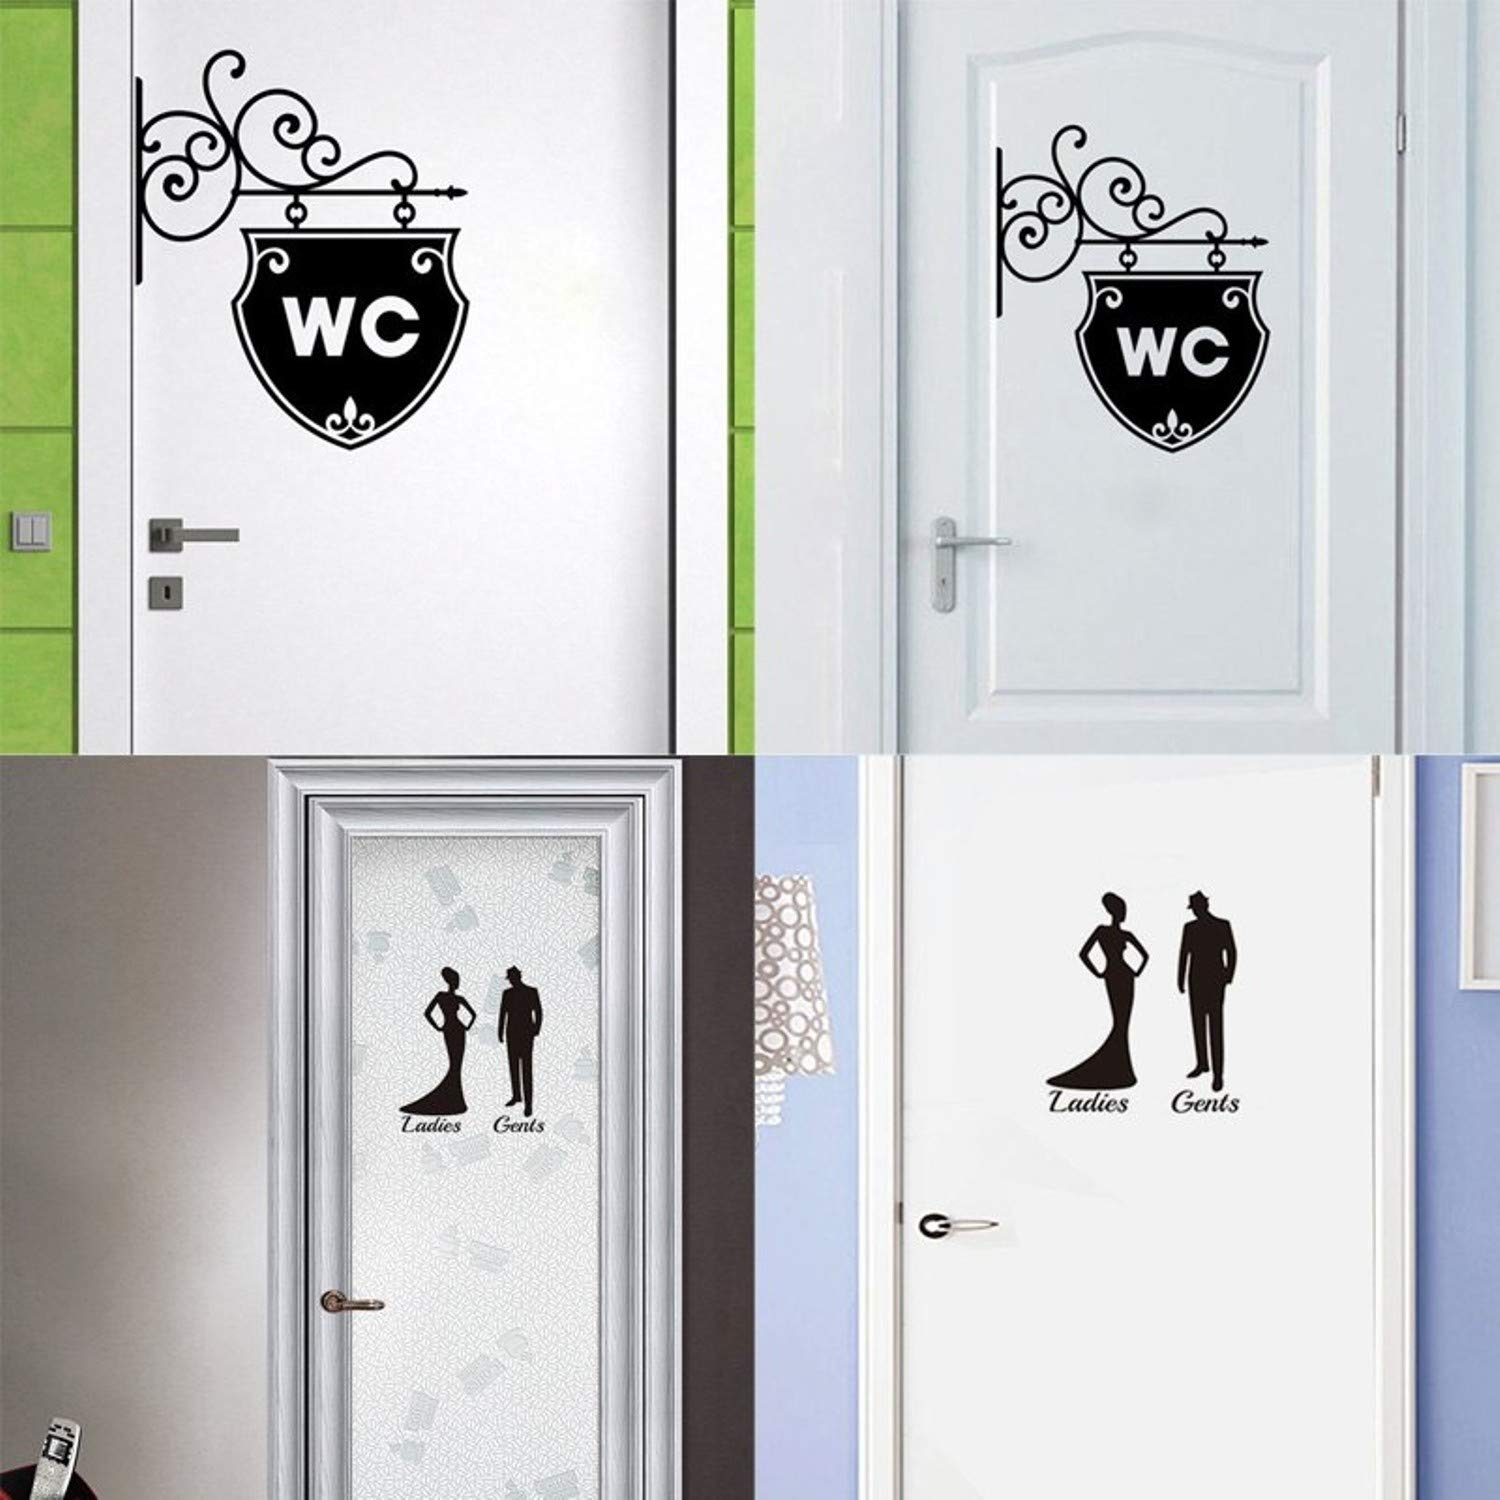 Amazon.com: Batop 3D Mirror Sticker - Funny WC Toilet Door Entrance Sign Men Women - Bathroom DIY Wall Sticker Decals Bar Home Decor (Black Style 2): Home & ...